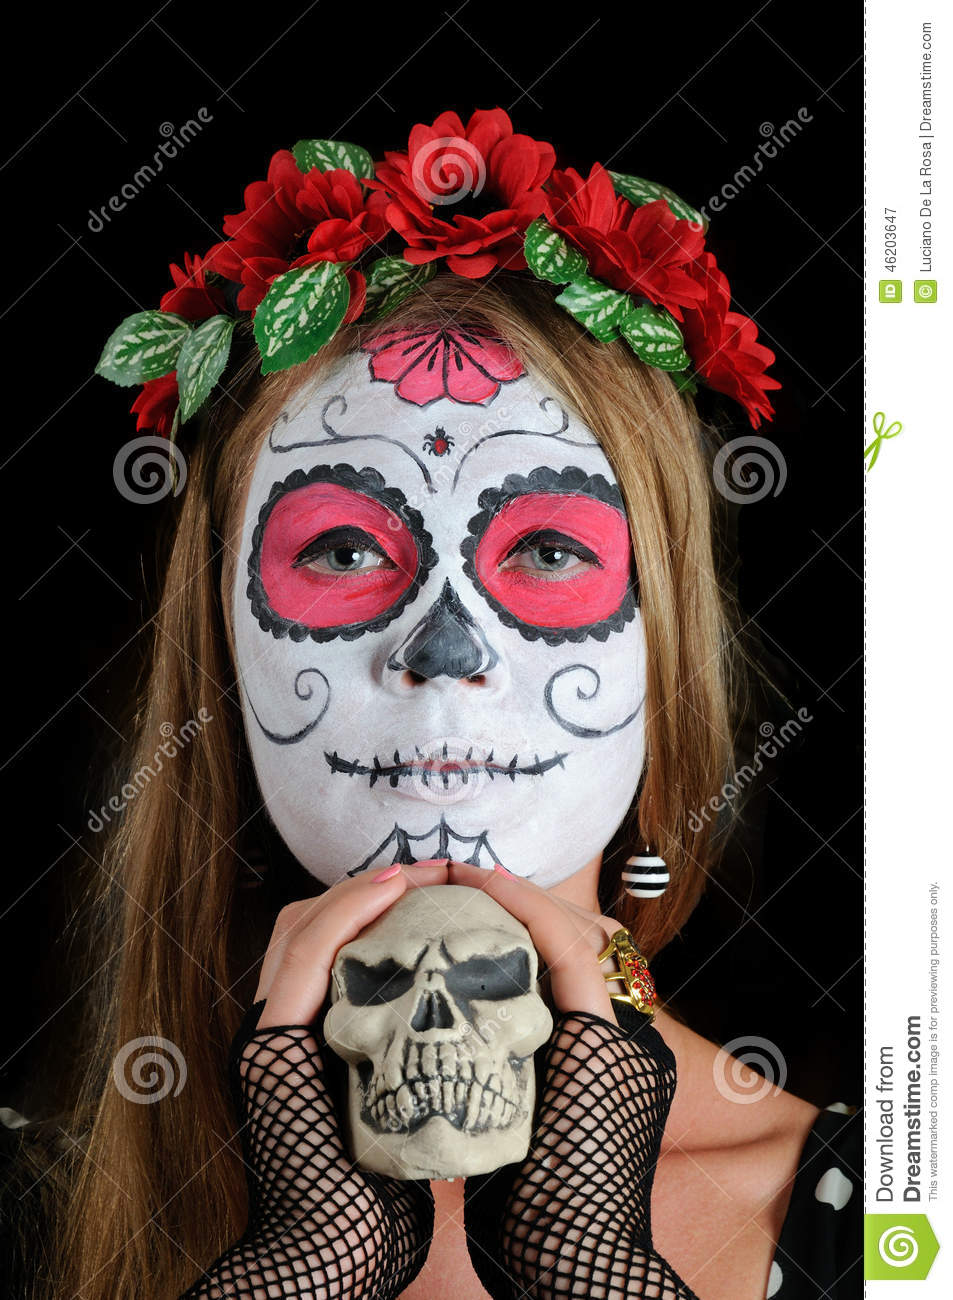 Halloween Make Up Mexican Mask Stock Photo - Image: 46203647